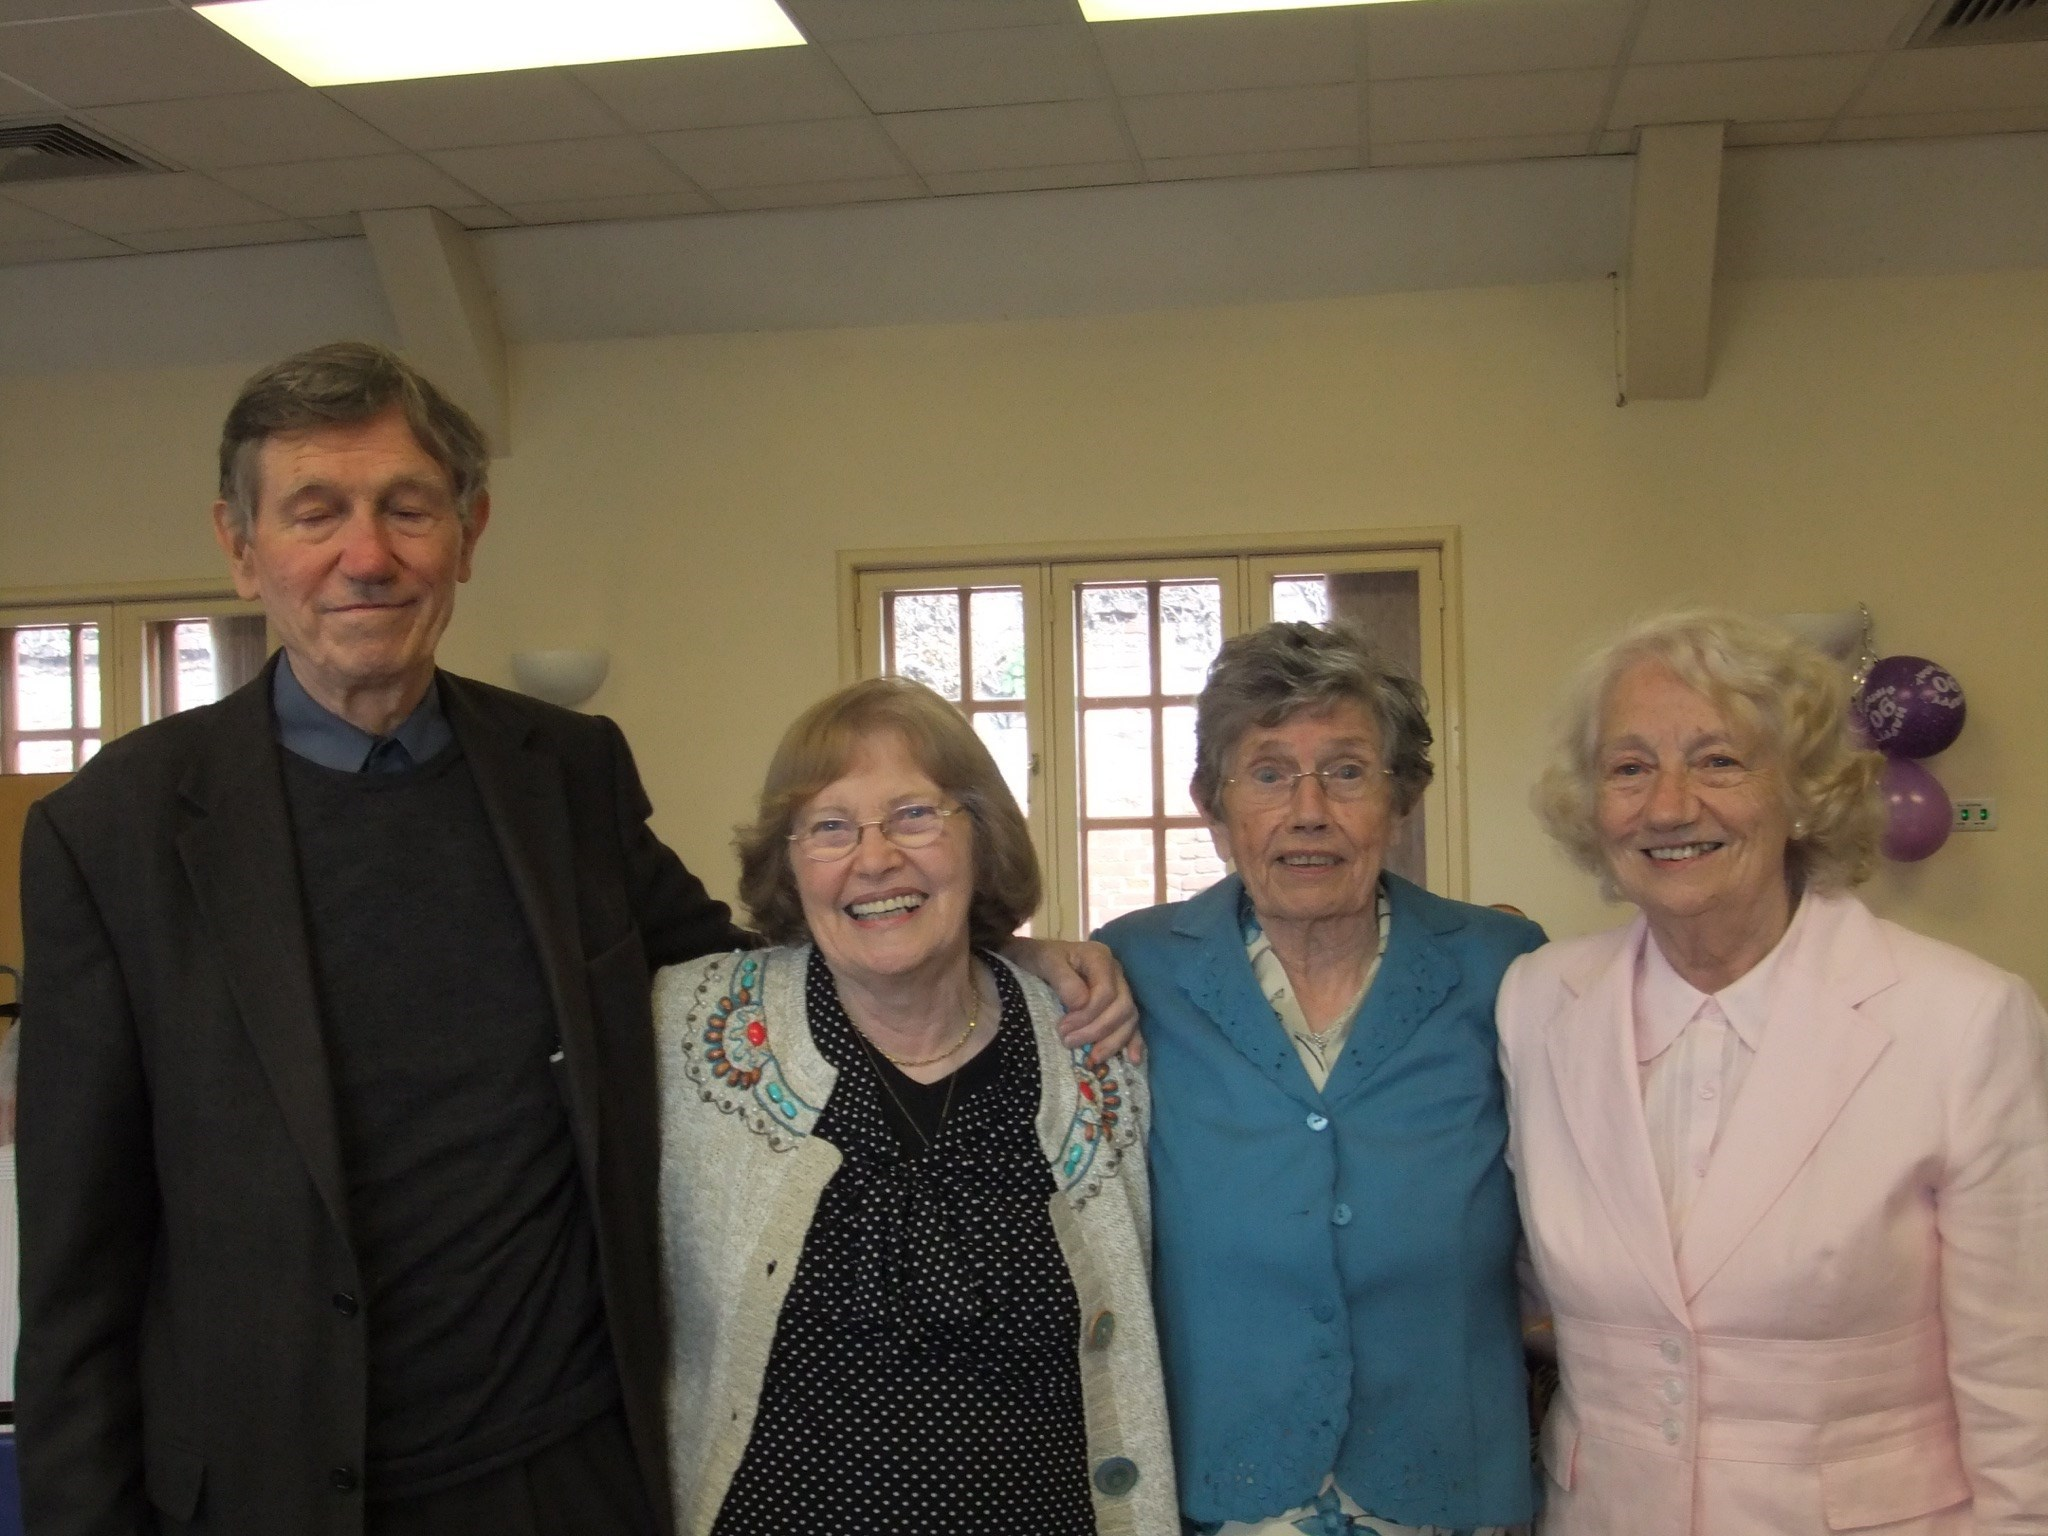 John with his sisters Winnie, Veronica and Marcella at Marcella's 90th birthday party.